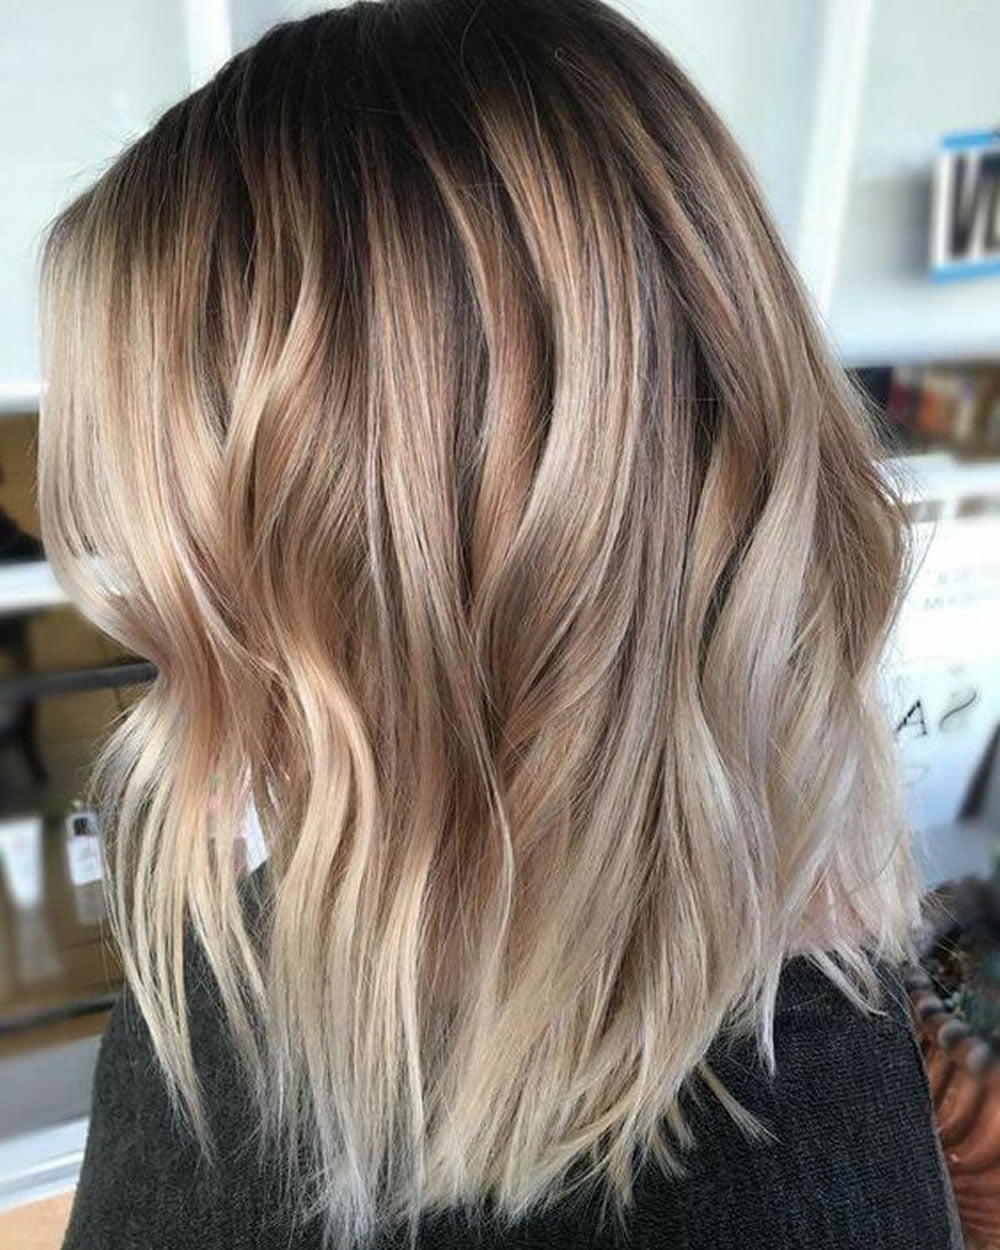 Balayage Ombre Highlights 2018: Dark, Brunette, Blonde Etc Intended For Blonde Balayage Hairstyles (View 13 of 20)